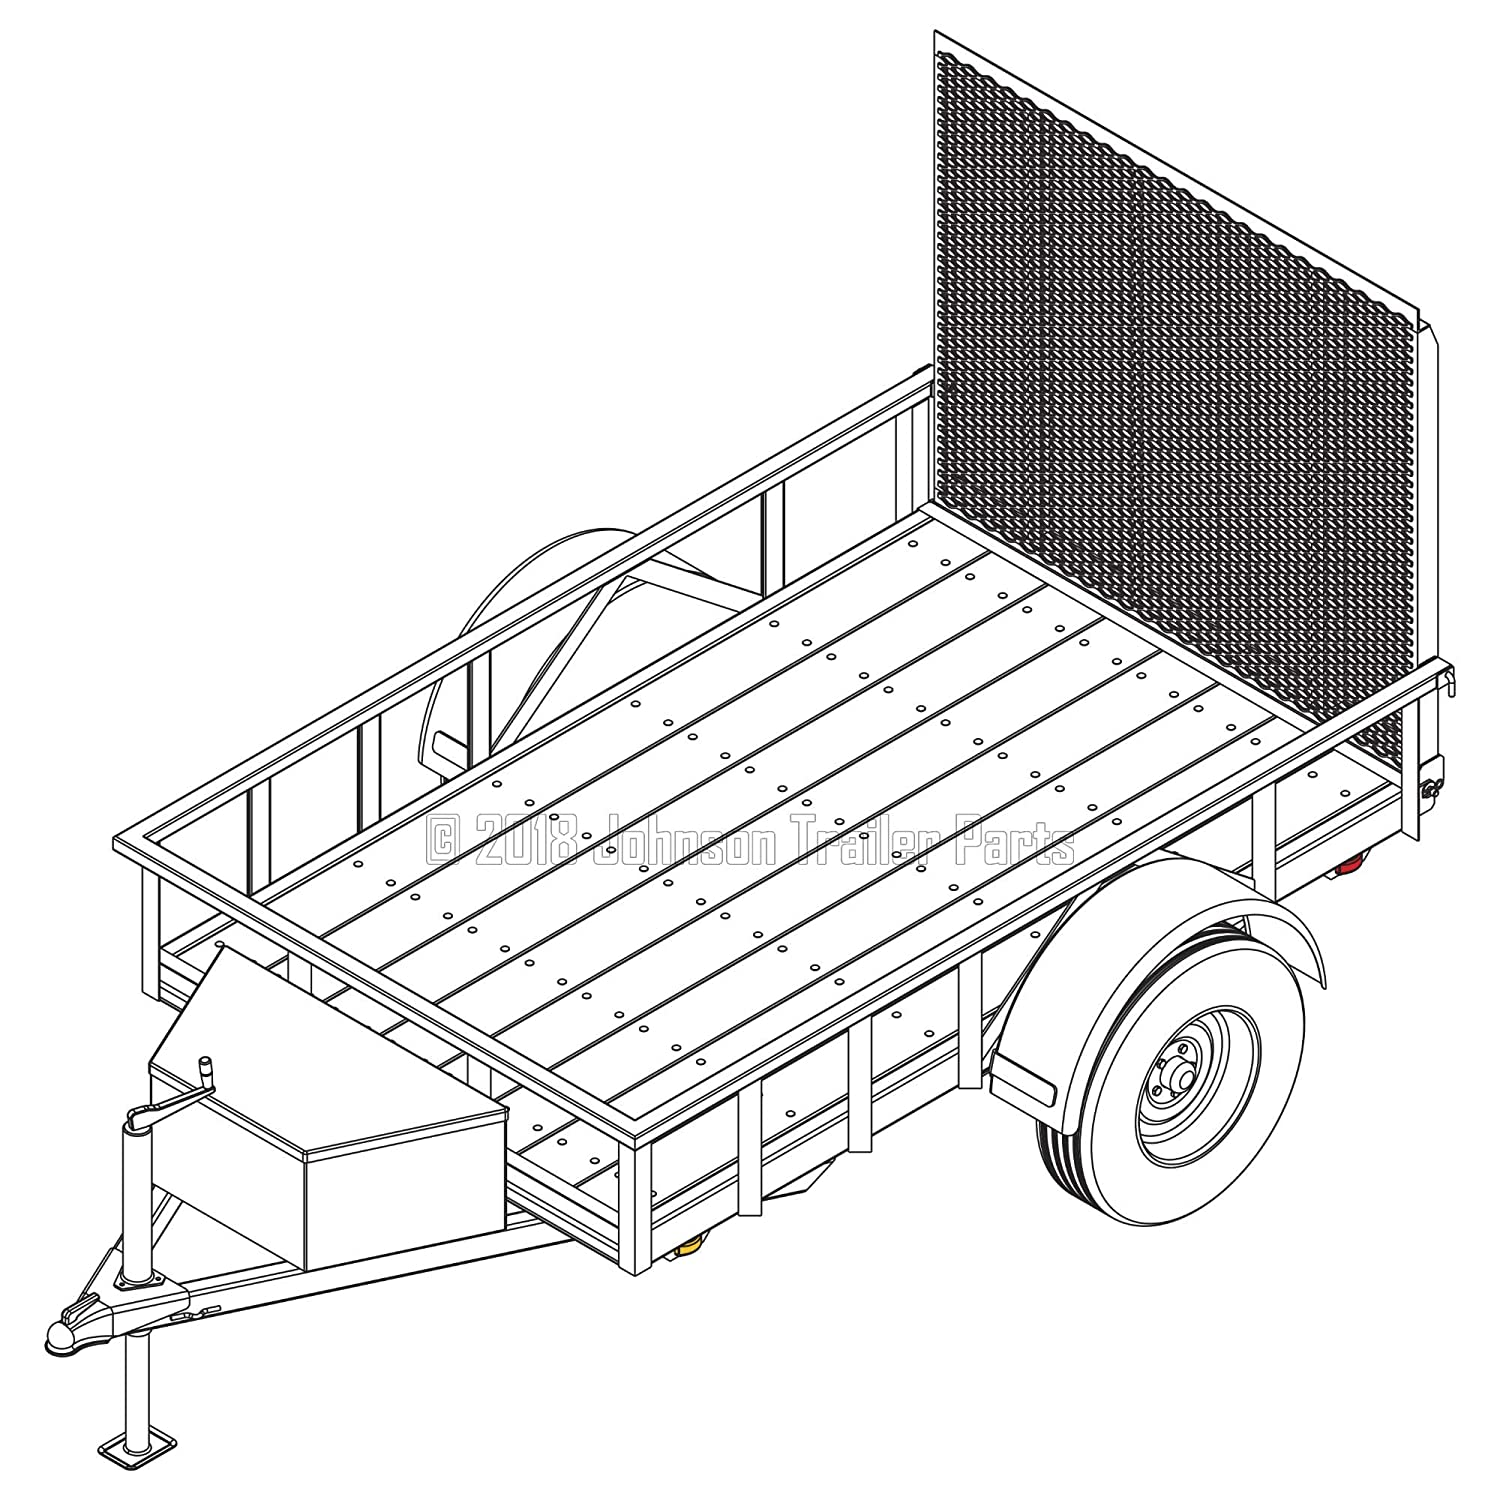 5′ x 8′ Utility Trailer Plans – 3, 500 lb Capacity | Trailer Blueprints Johnson Trailer Parts U60-96-35J